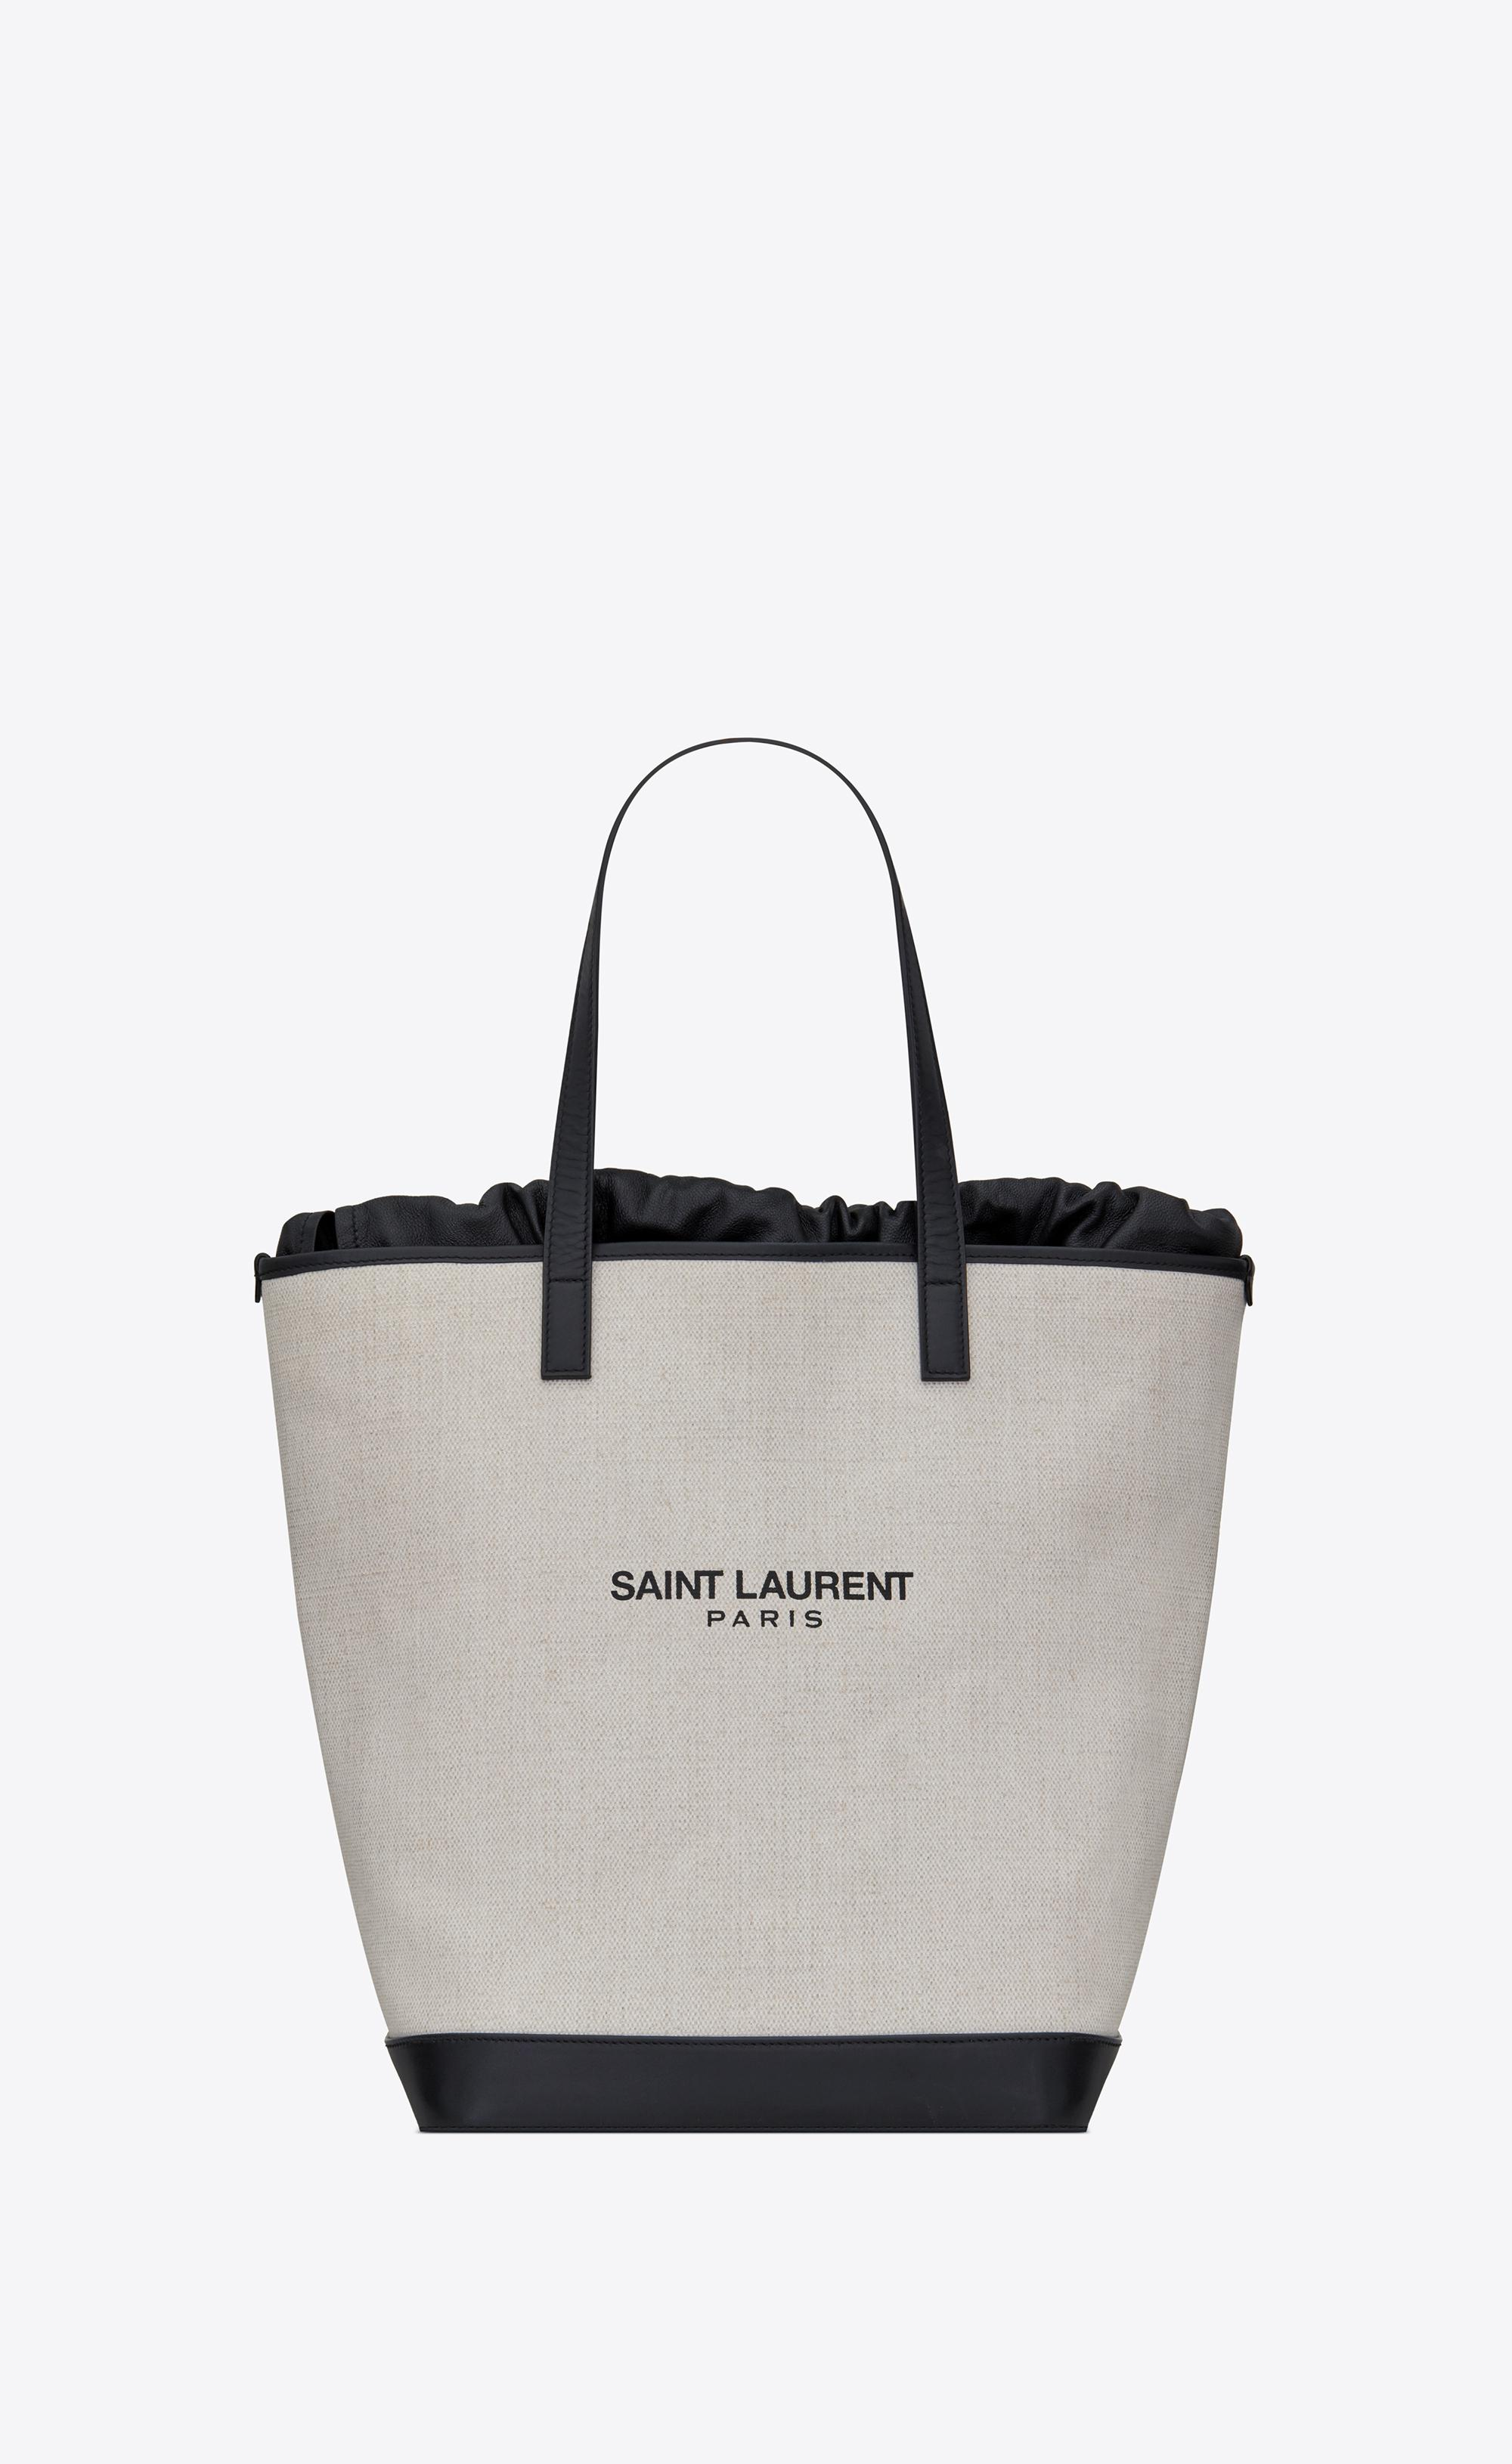 b8cd9a8357 Saint Laurent Teddy Shopping Bag In Linen Canvas in White - Lyst